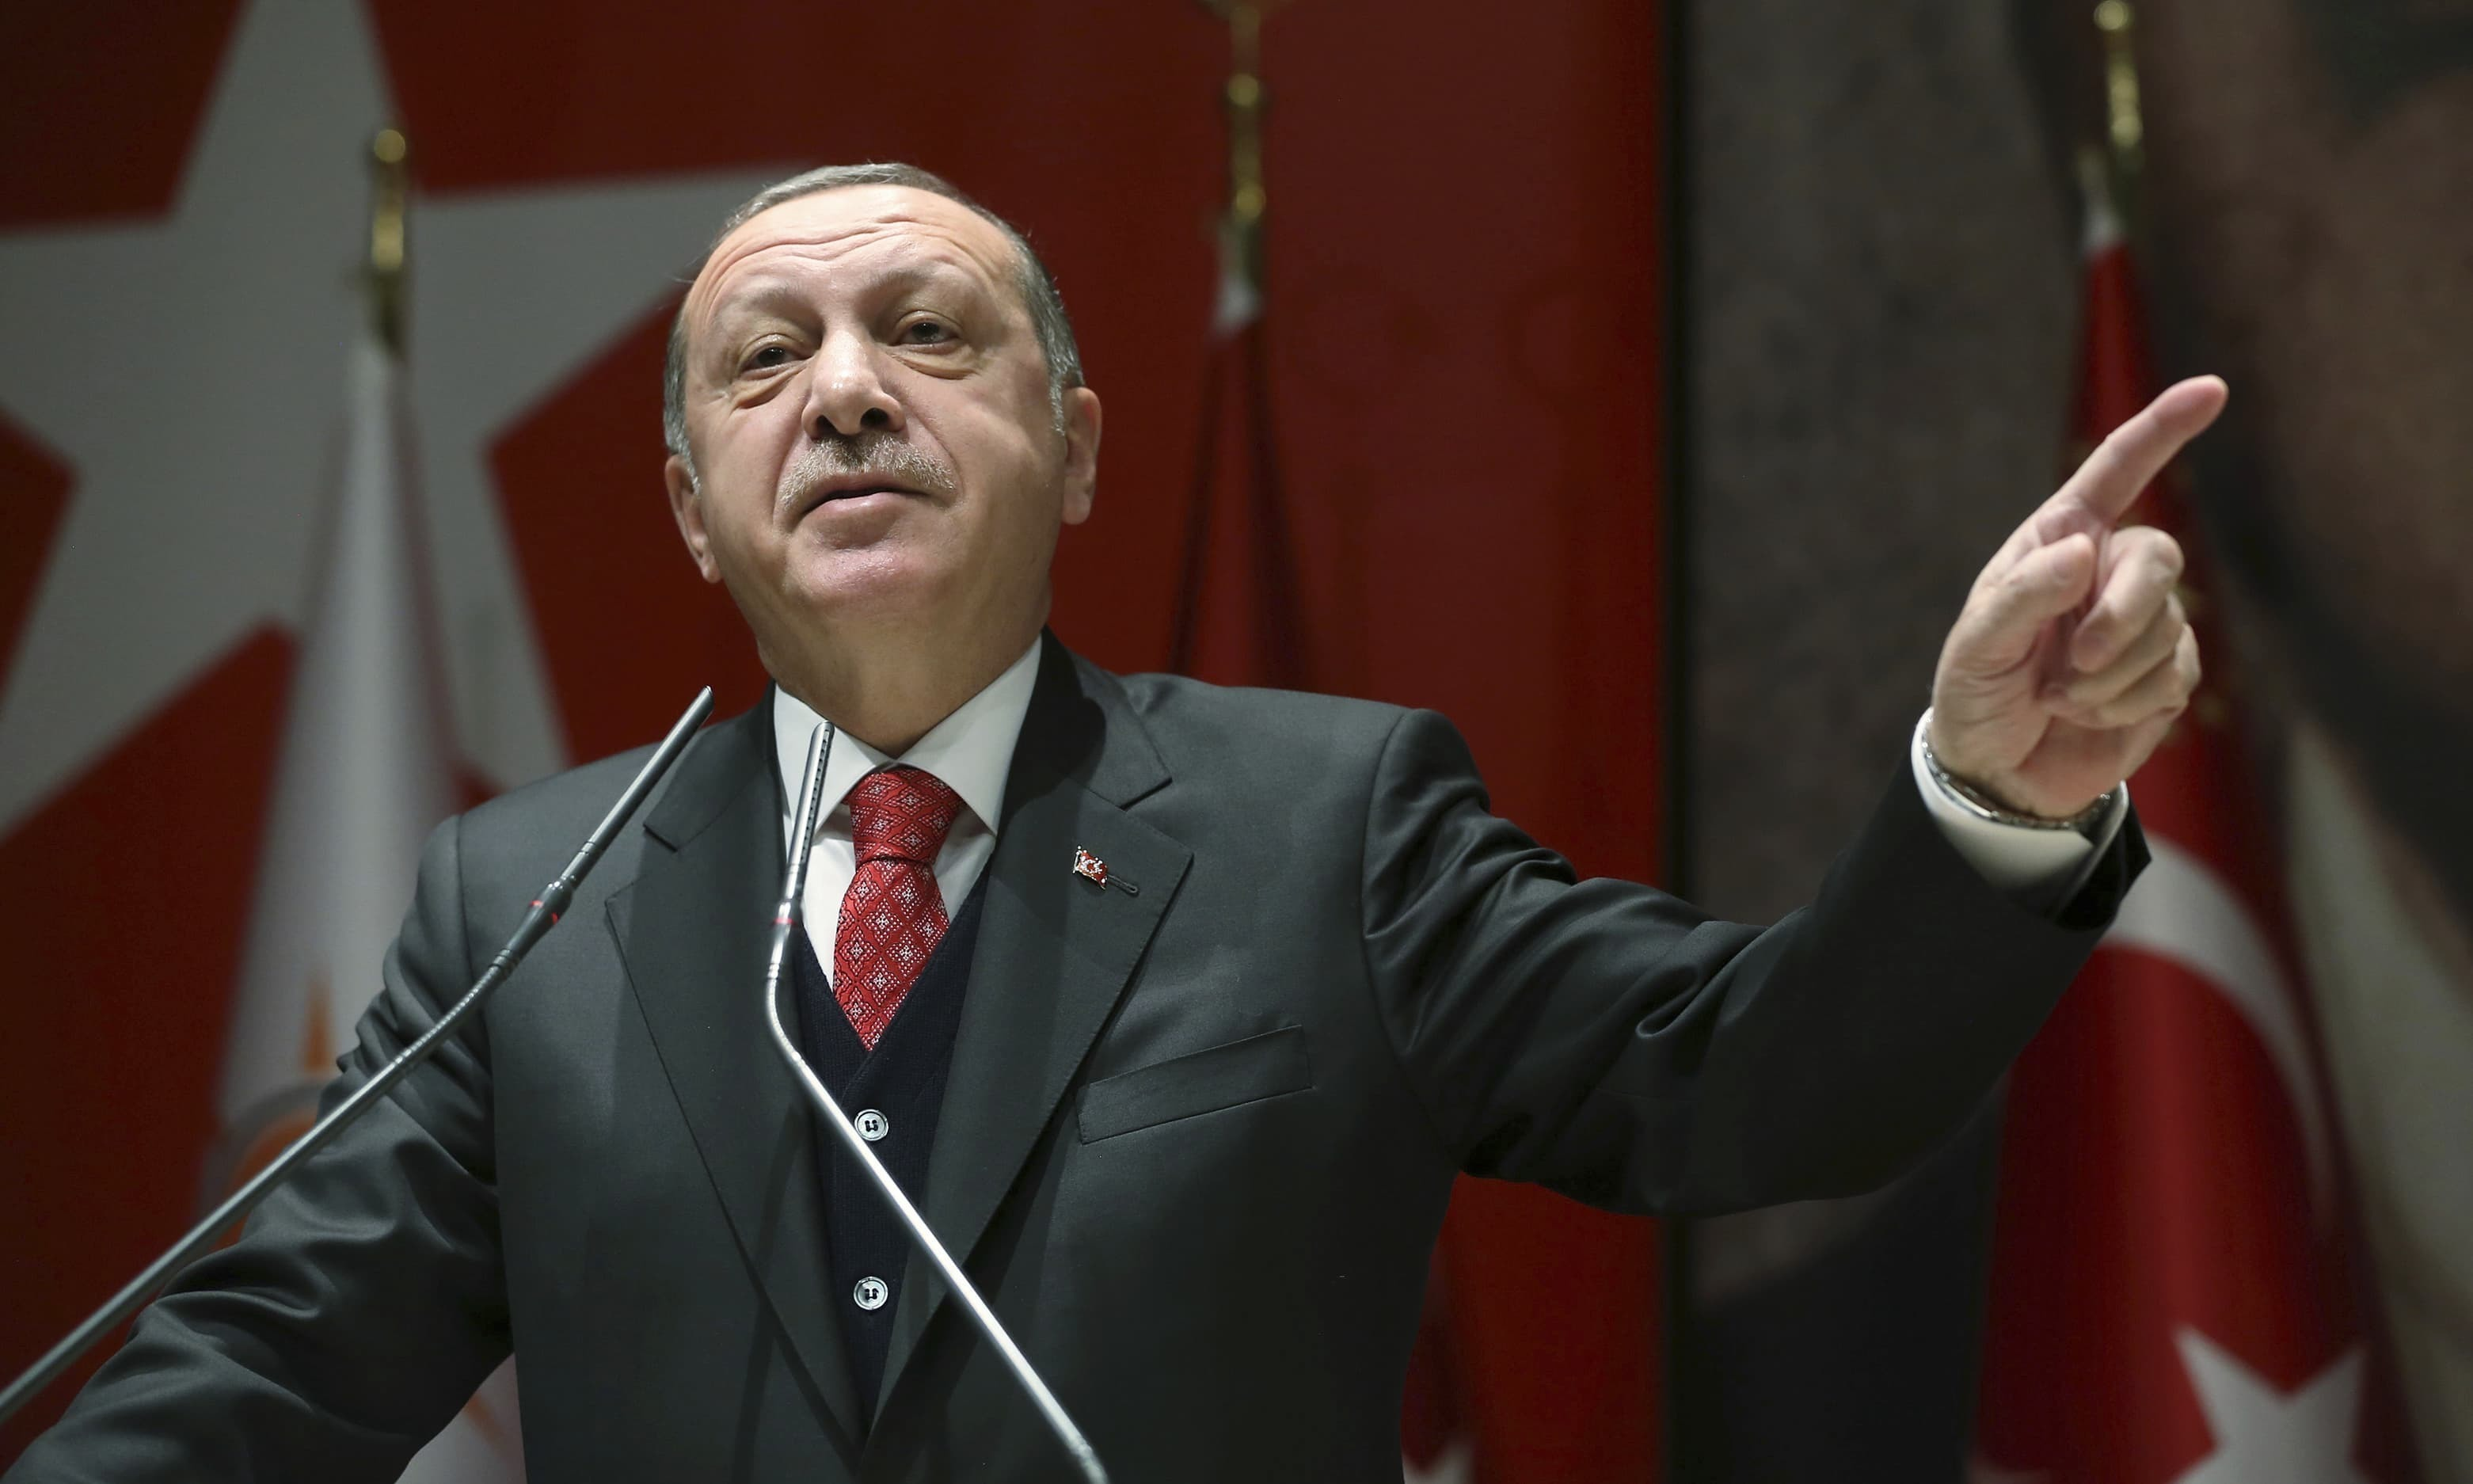 Turkish President Tayyip Erdogan said on Wednesday his military would strike Syrian forces by air or ground anywhere in Syria if another Turkish soldier was hurt as the Syrian government fought to regain control of northwestern Idlib province from rebels. — AP/File